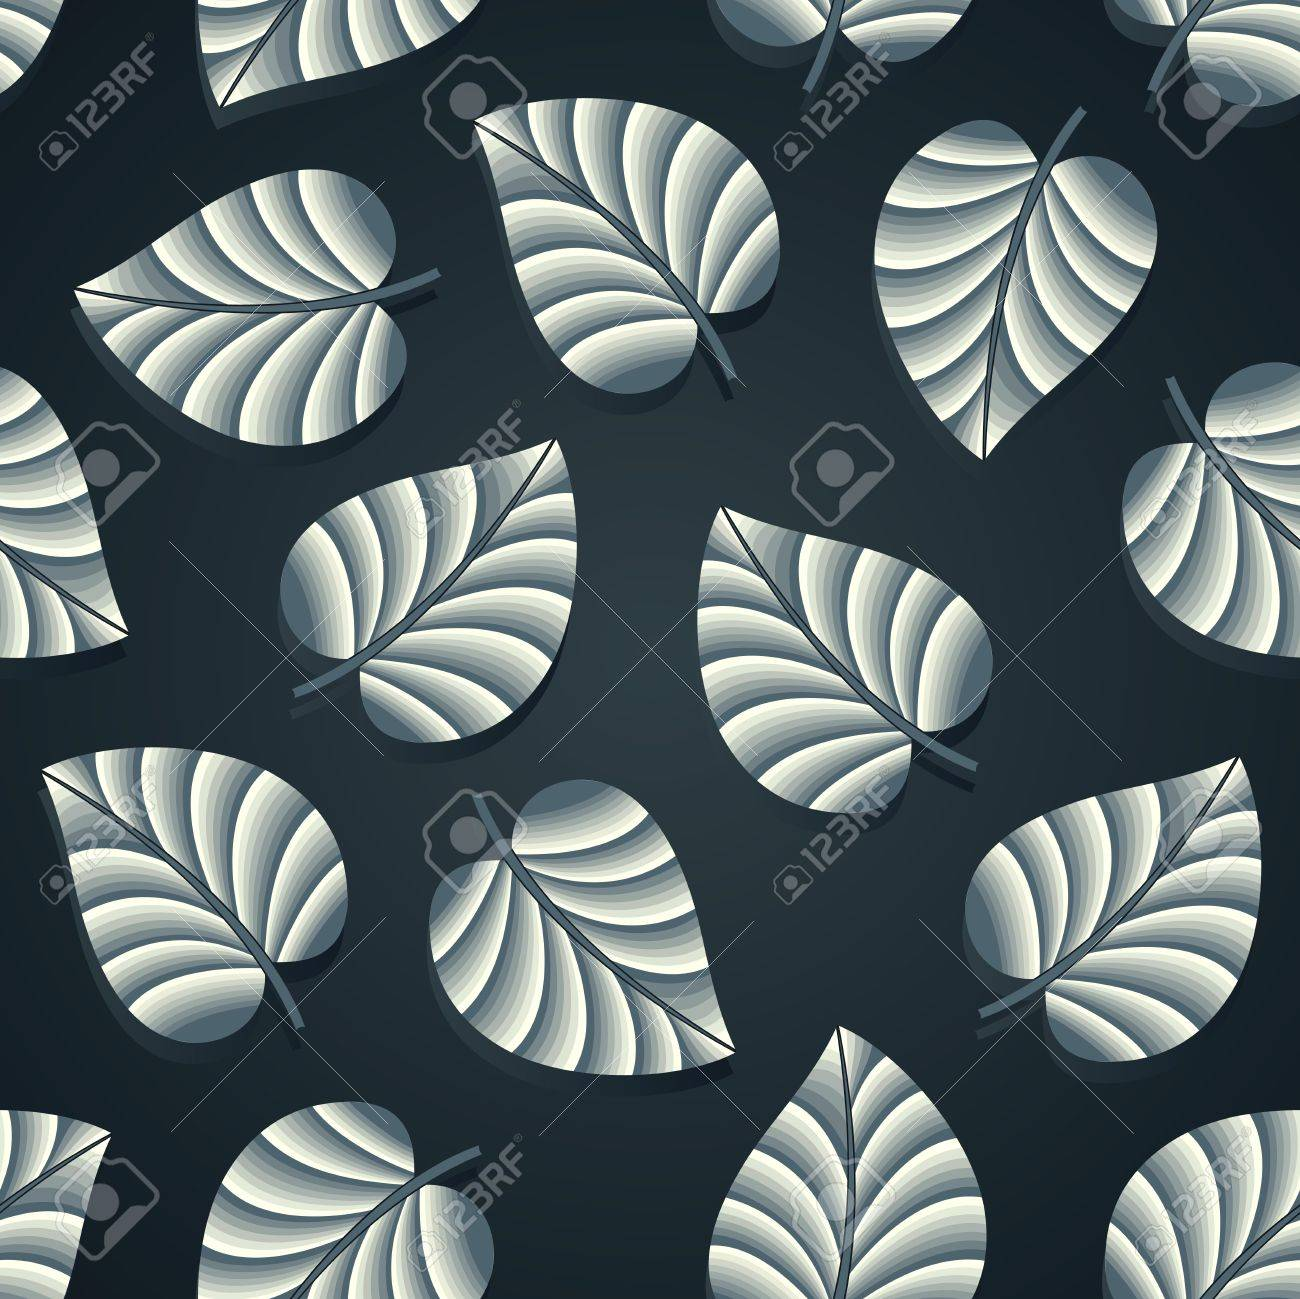 Black bed sheet texture seamless - Royal Seamless Leaves Wallpaper Stock Vector 18553192